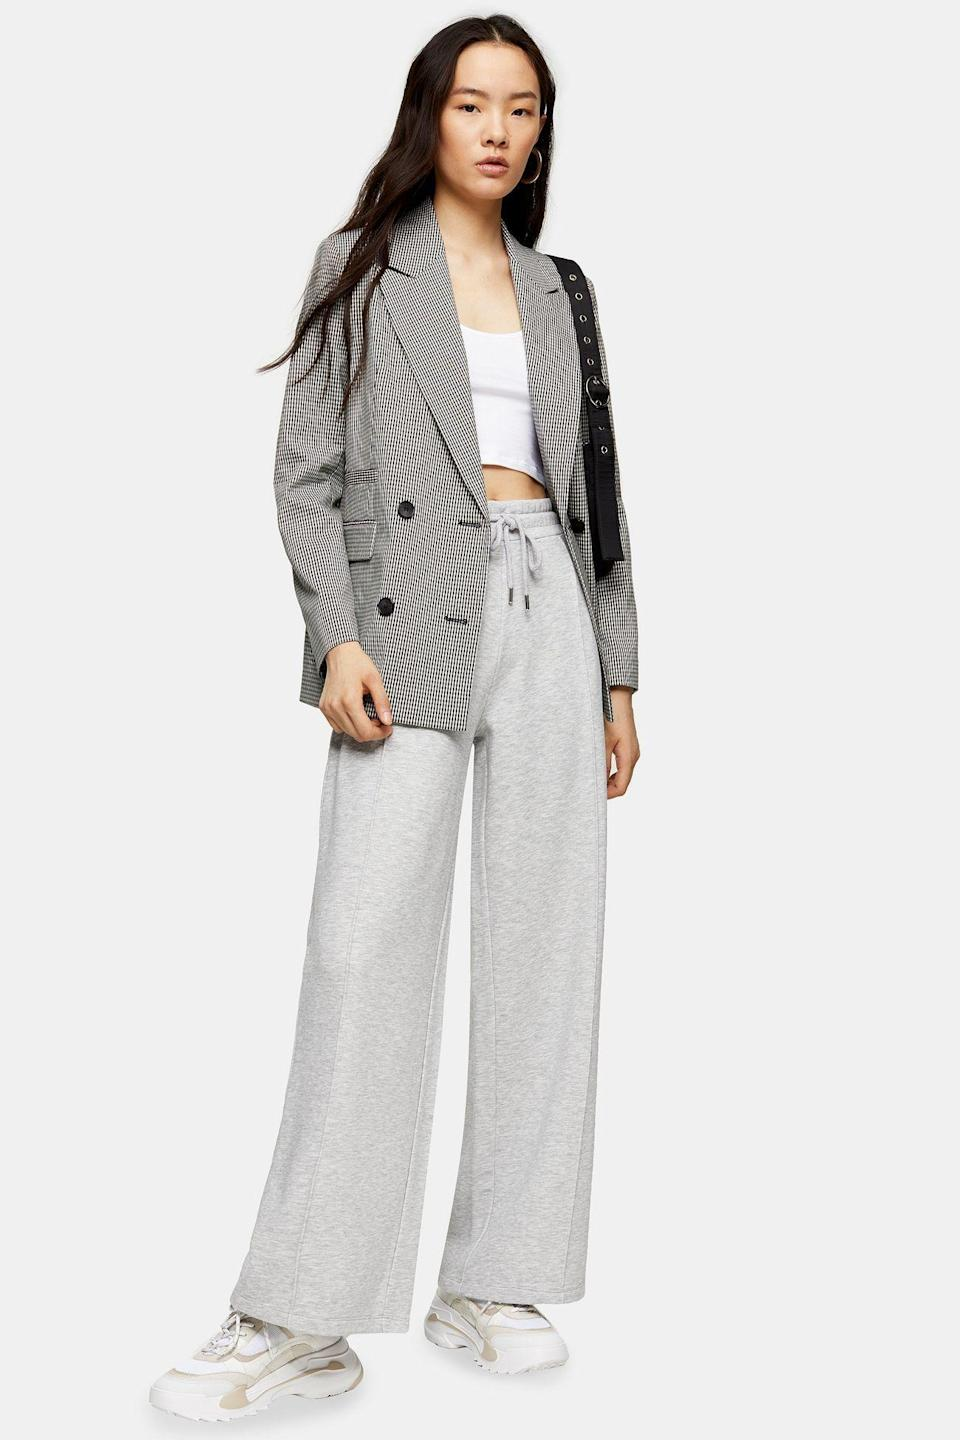 """<p><strong>Topshop</strong></p><p>topshop.com</p><p><strong>$55.00</strong></p><p><a href=""""https://go.redirectingat.com?id=74968X1596630&url=https%3A%2F%2Fus.topshop.com%2Fen%2Ftsus%2Fproduct%2Fgrey-slouch-slouch-wide-leg-joggers-9763722&sref=https%3A%2F%2Fwww.cosmopolitan.com%2Fstyle-beauty%2Ffashion%2Fg10327302%2Fcute-fall-outfits%2F"""" rel=""""nofollow noopener"""" target=""""_blank"""" data-ylk=""""slk:Shop Now"""" class=""""link rapid-noclick-resp"""">Shop Now</a></p><p>I want to wear my sweats 24/7 too. And this outfit is proof that they're more than just loungewear—see how cute they look with a crop top and blazer? </p>"""